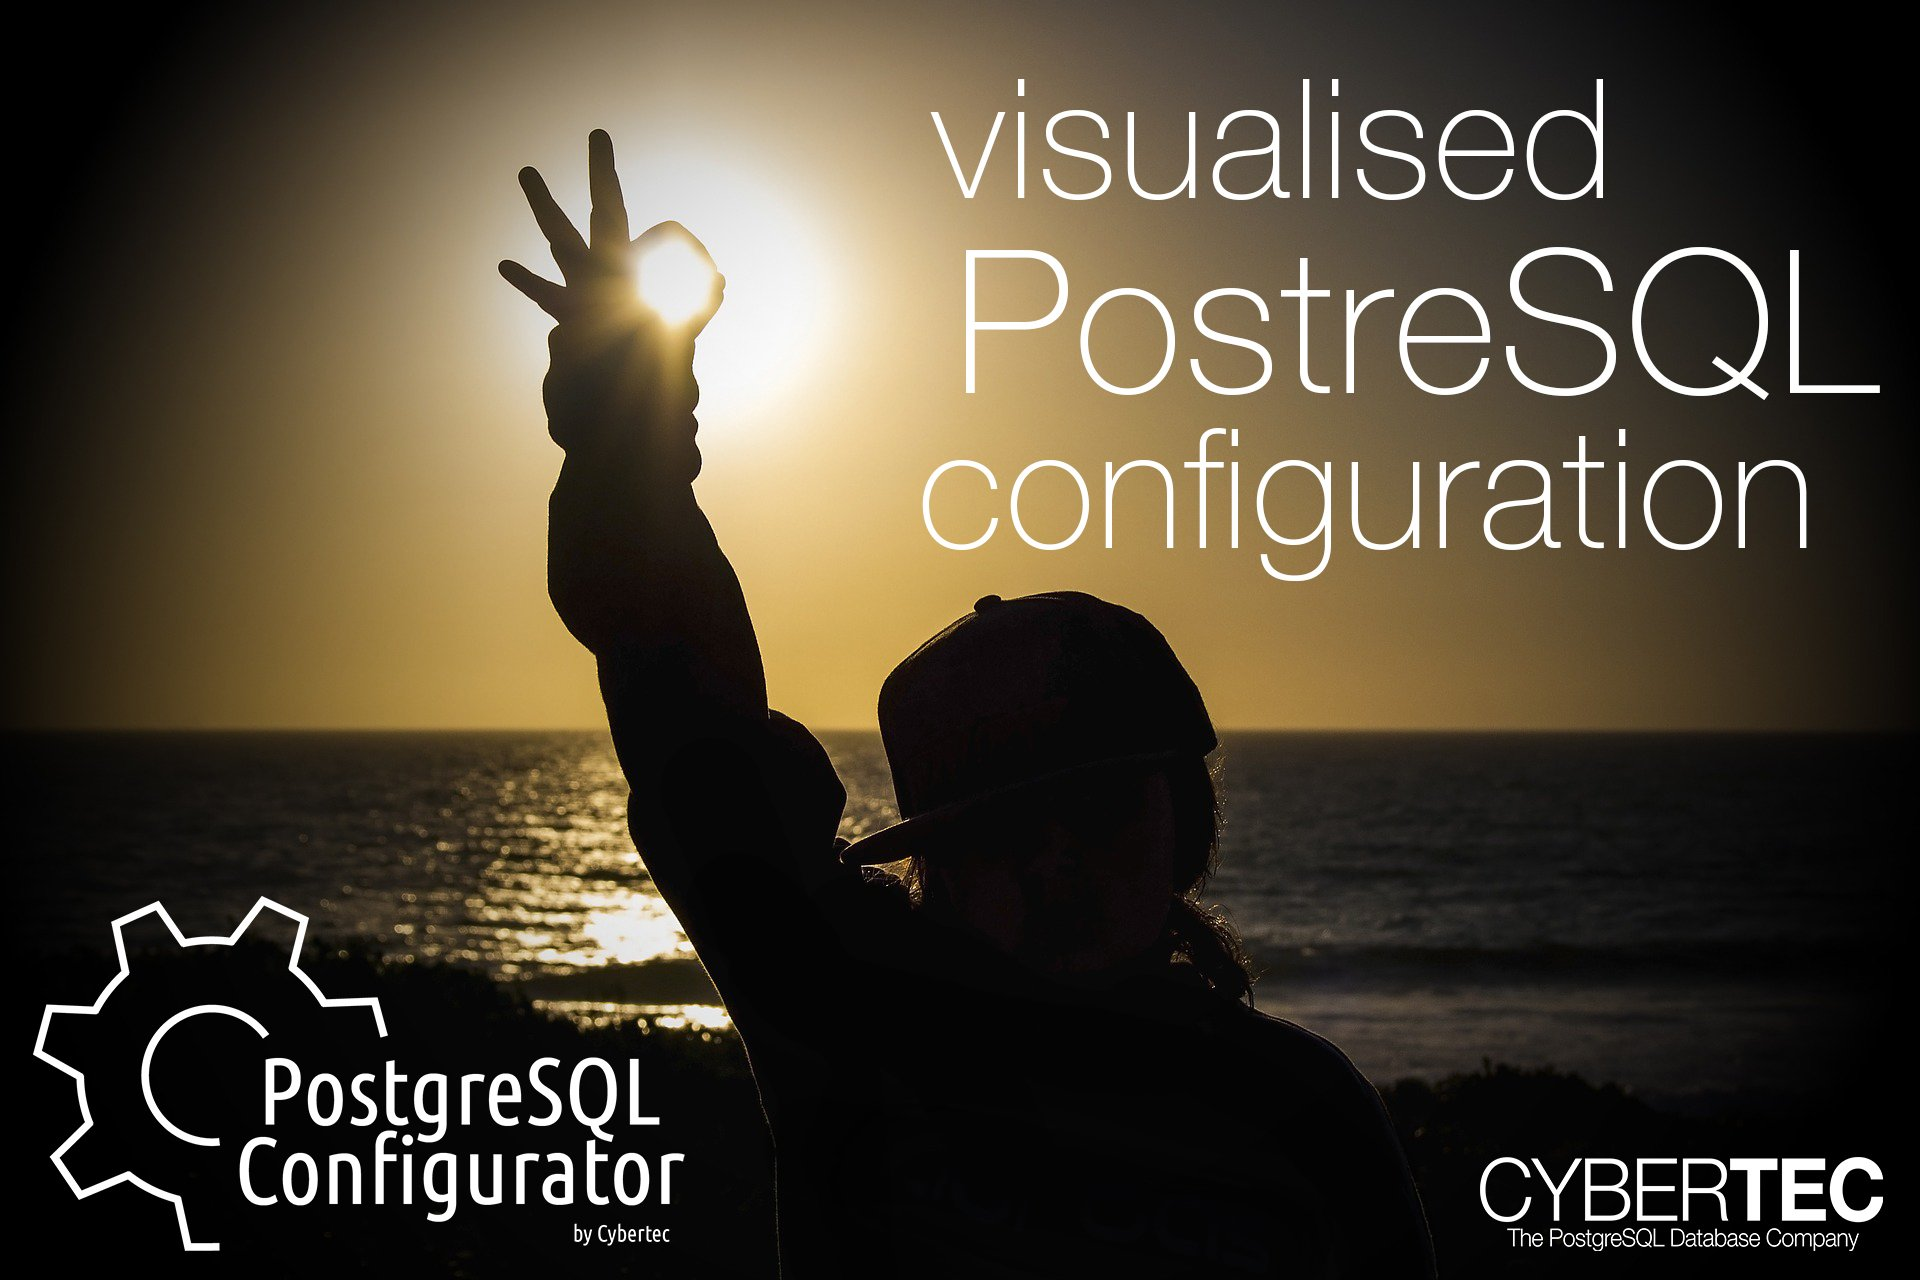 pgconfigurator - visualized PostgreSQL configuration